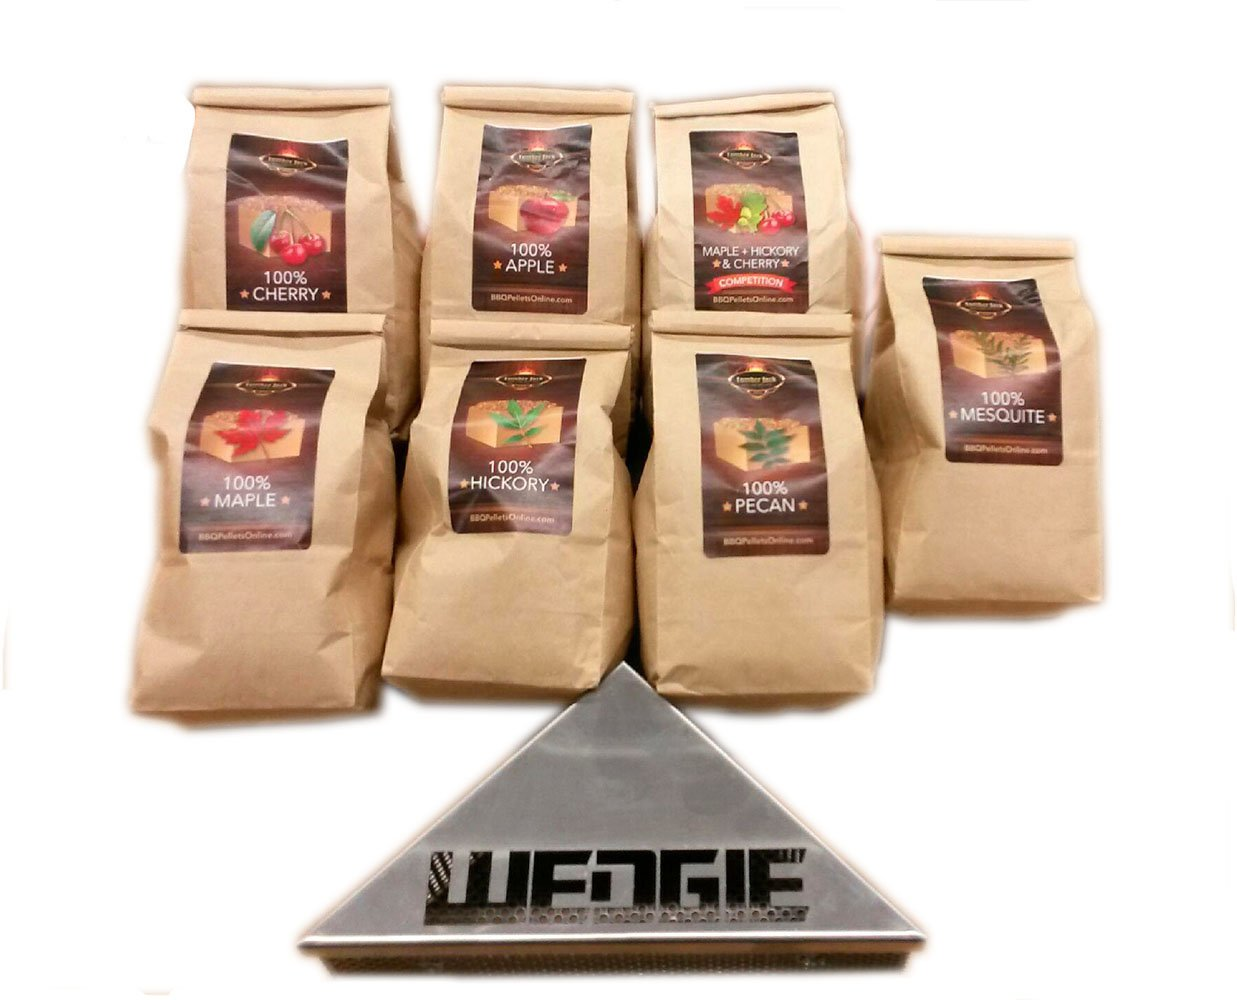 Lumber Jack Smokin Wedgie BBQ Pellet 7 Varieties Pack - 1 Lb. Bag - 100% (Apple, Cherry, Pecan, Hickory, Maple-Hickory-Cherry, Mesquite and Maple) - Shipped Priority Mail if Qty 1